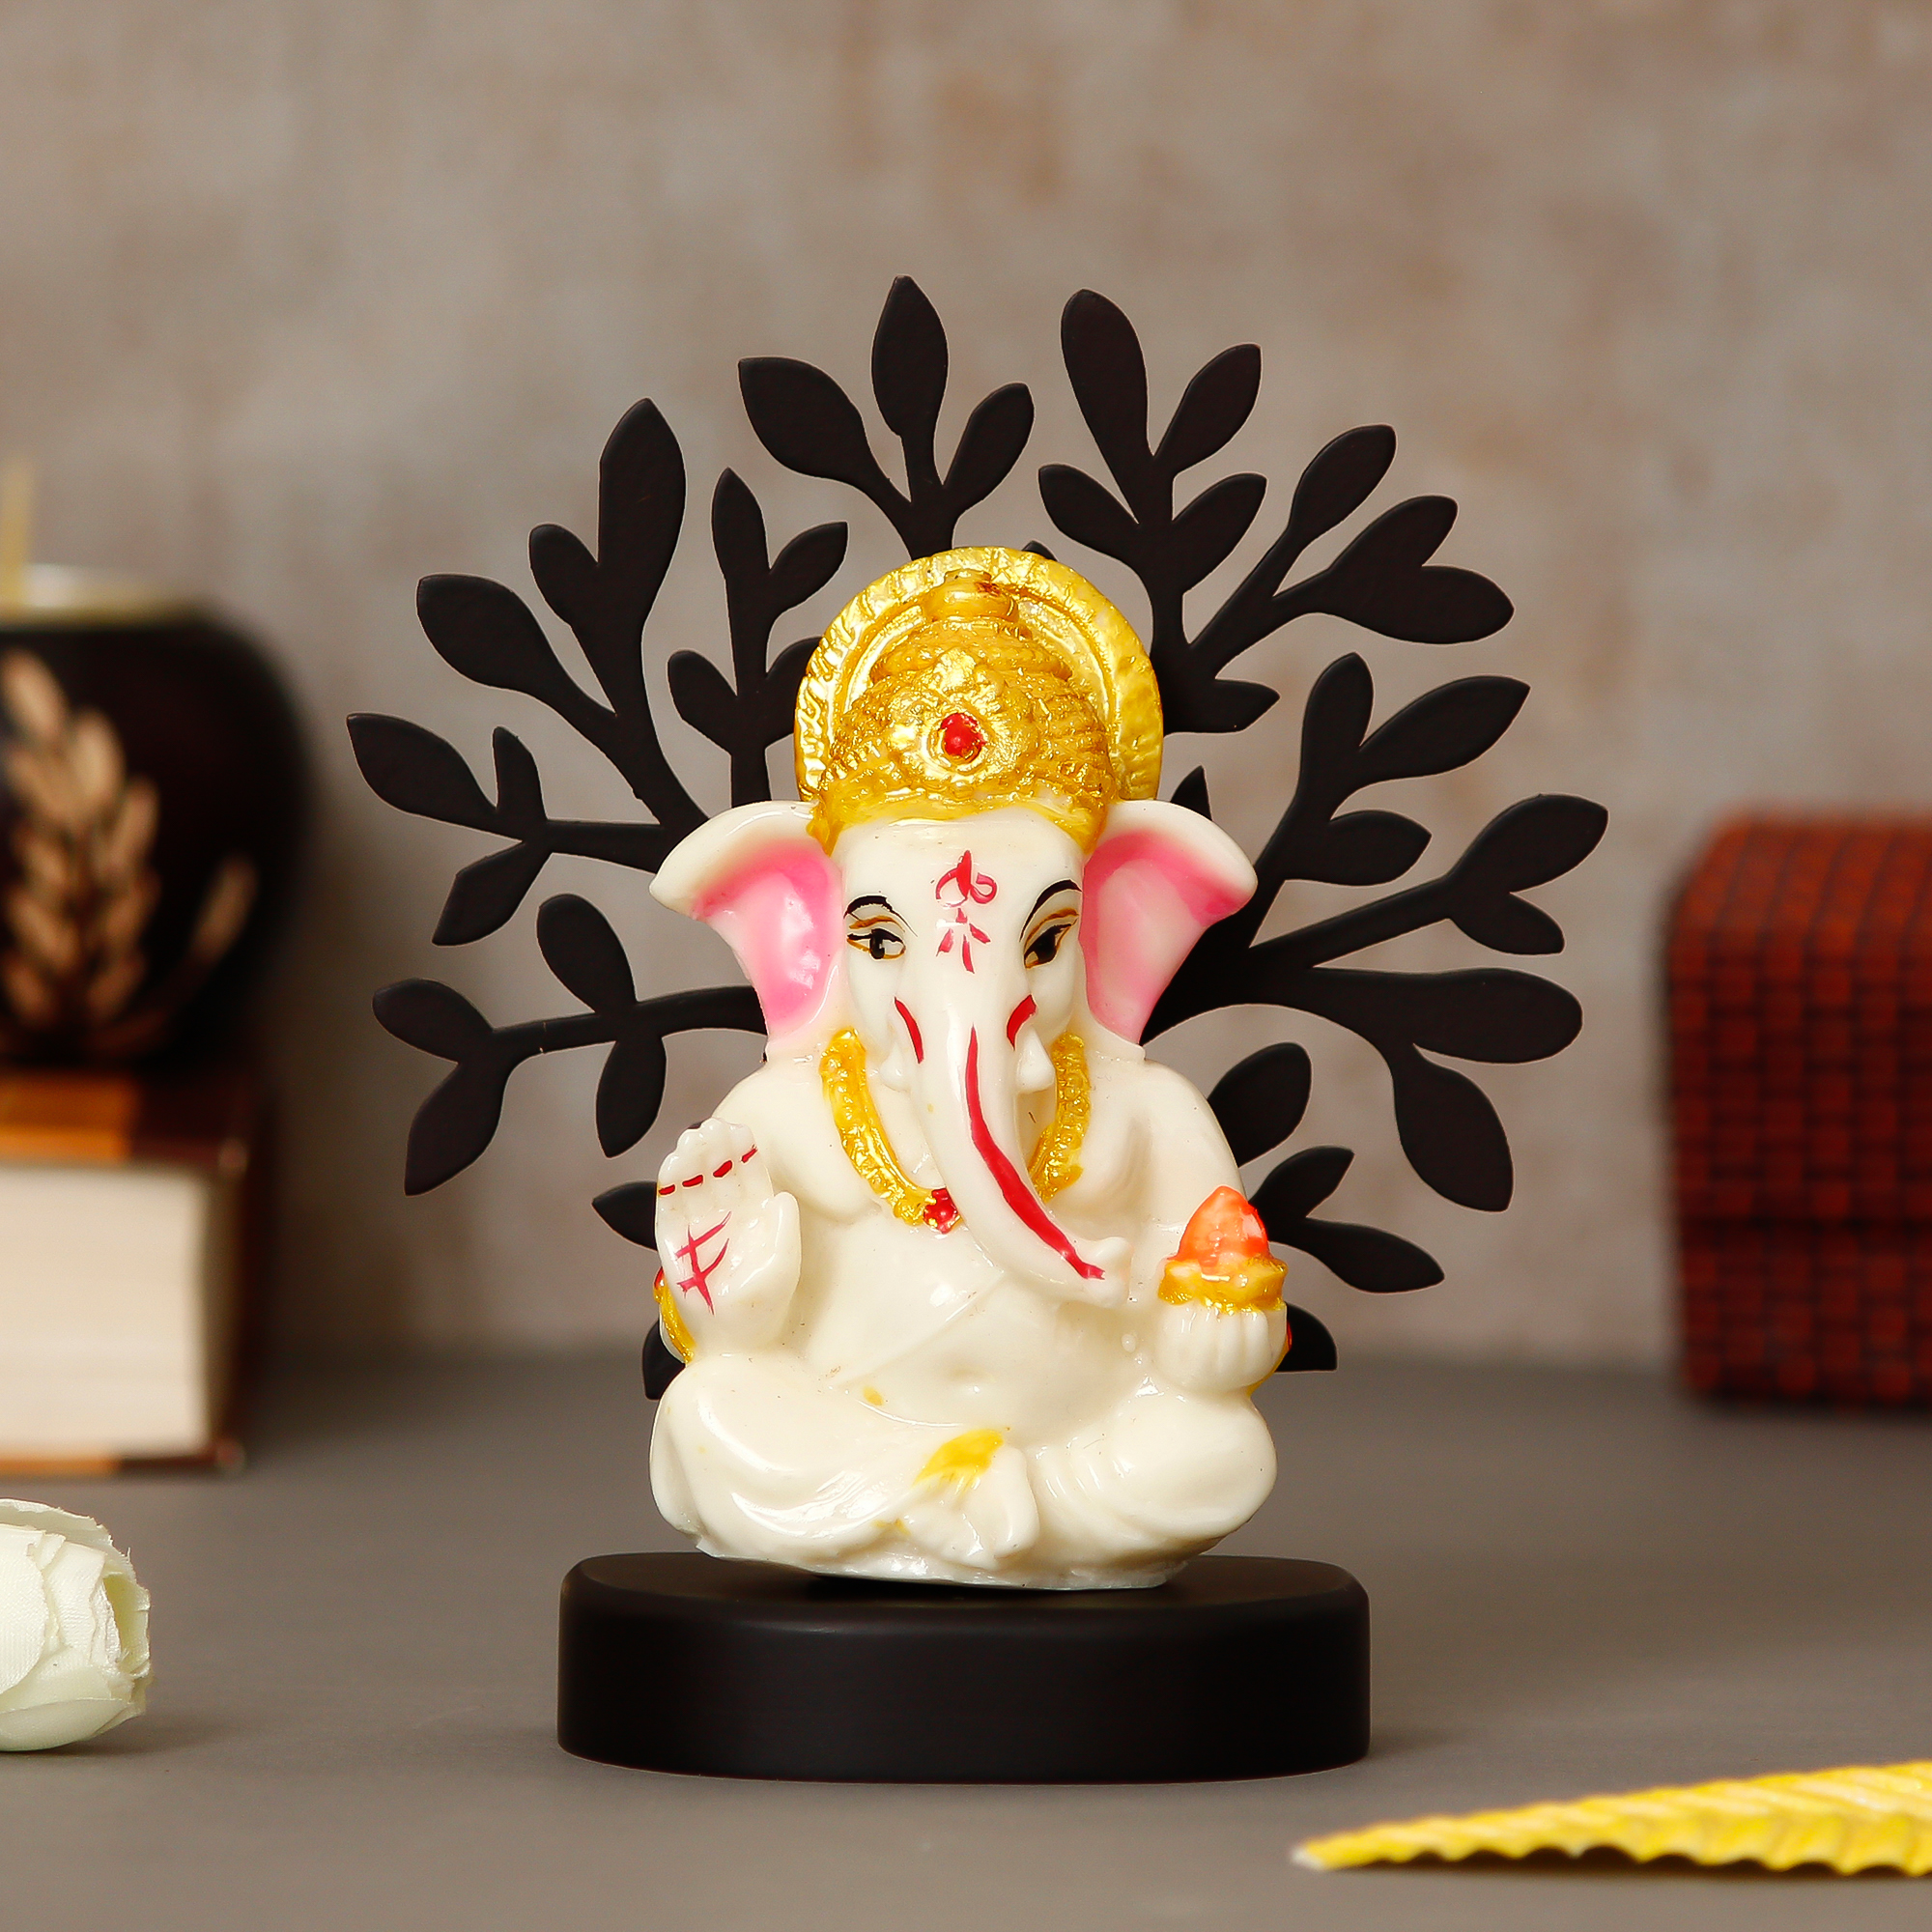 Decorative Lord Ganesha Idol with Wooden Tree for Car Dashboard, Home Temple and Office Desks Indian Home Decor